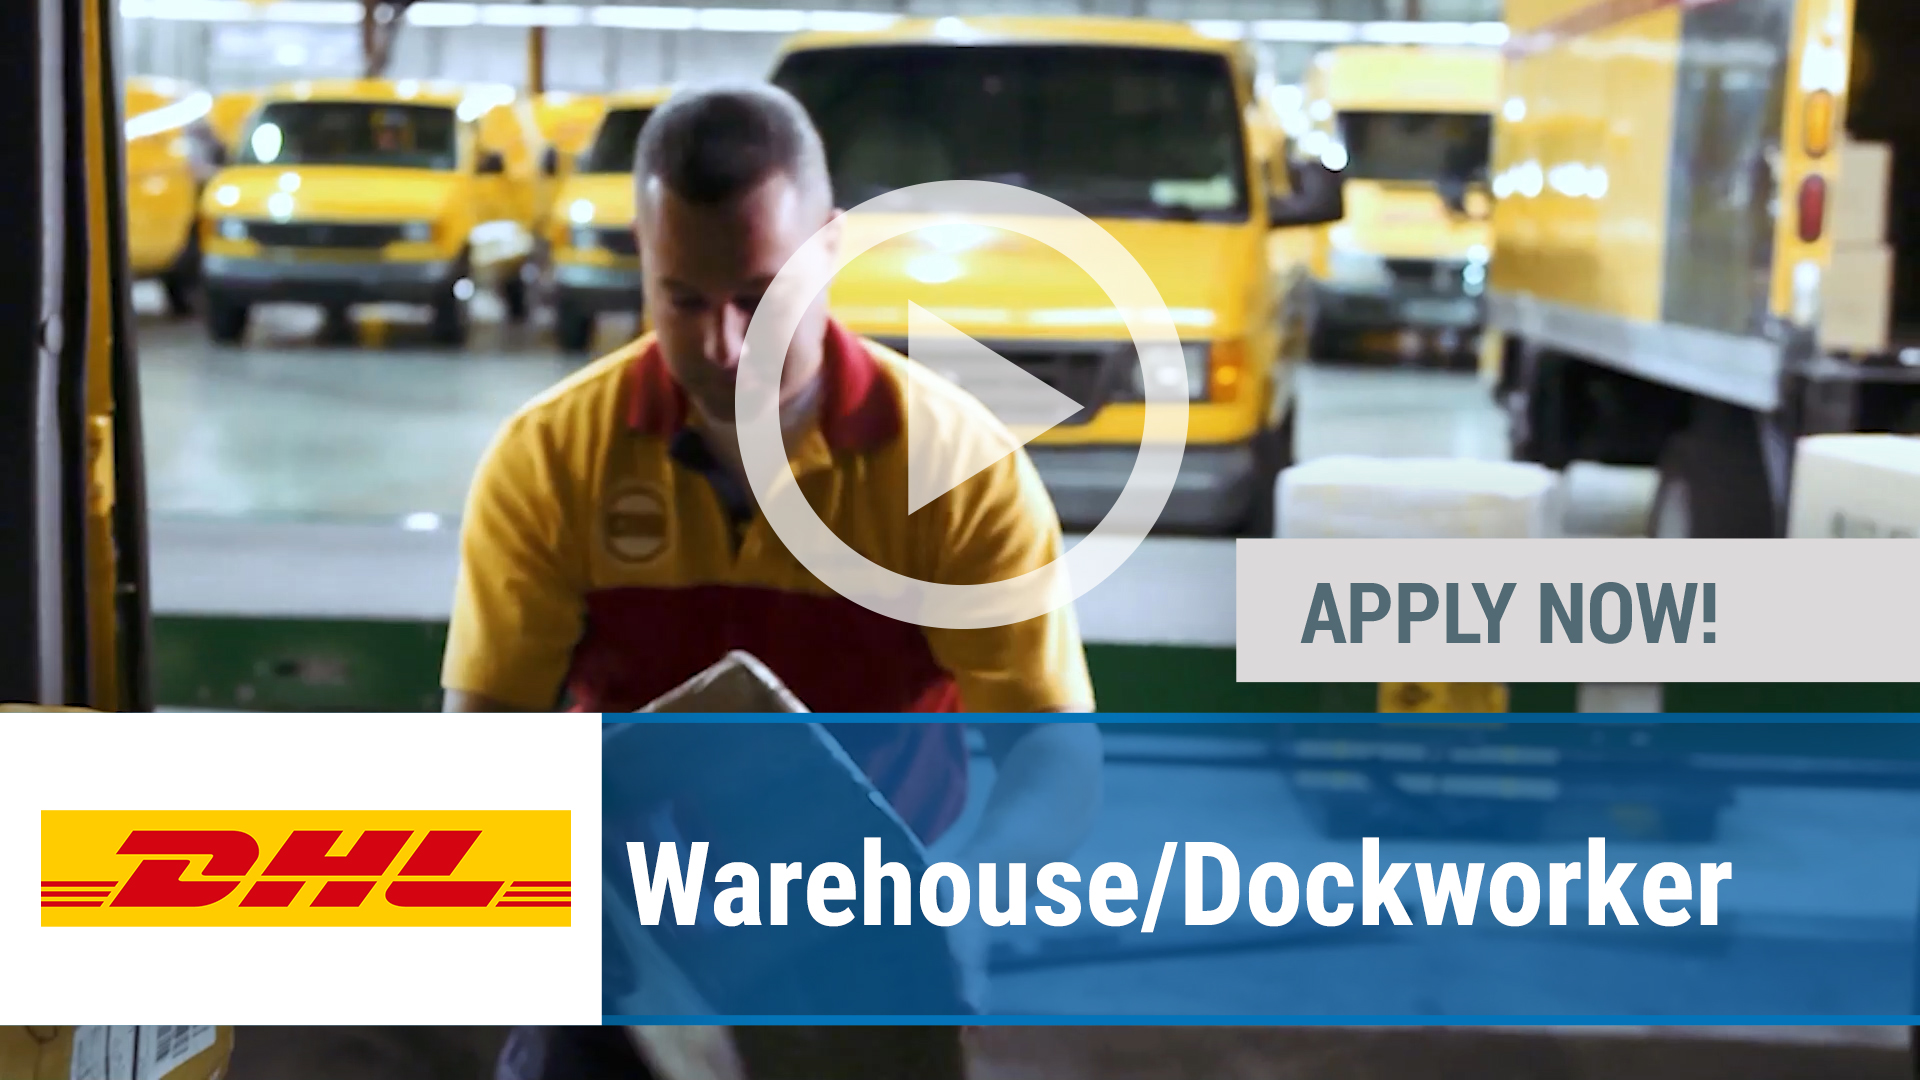 Watch our careers video for available job opening Warehouse_Dockworker in Indianapolis, IN, USA